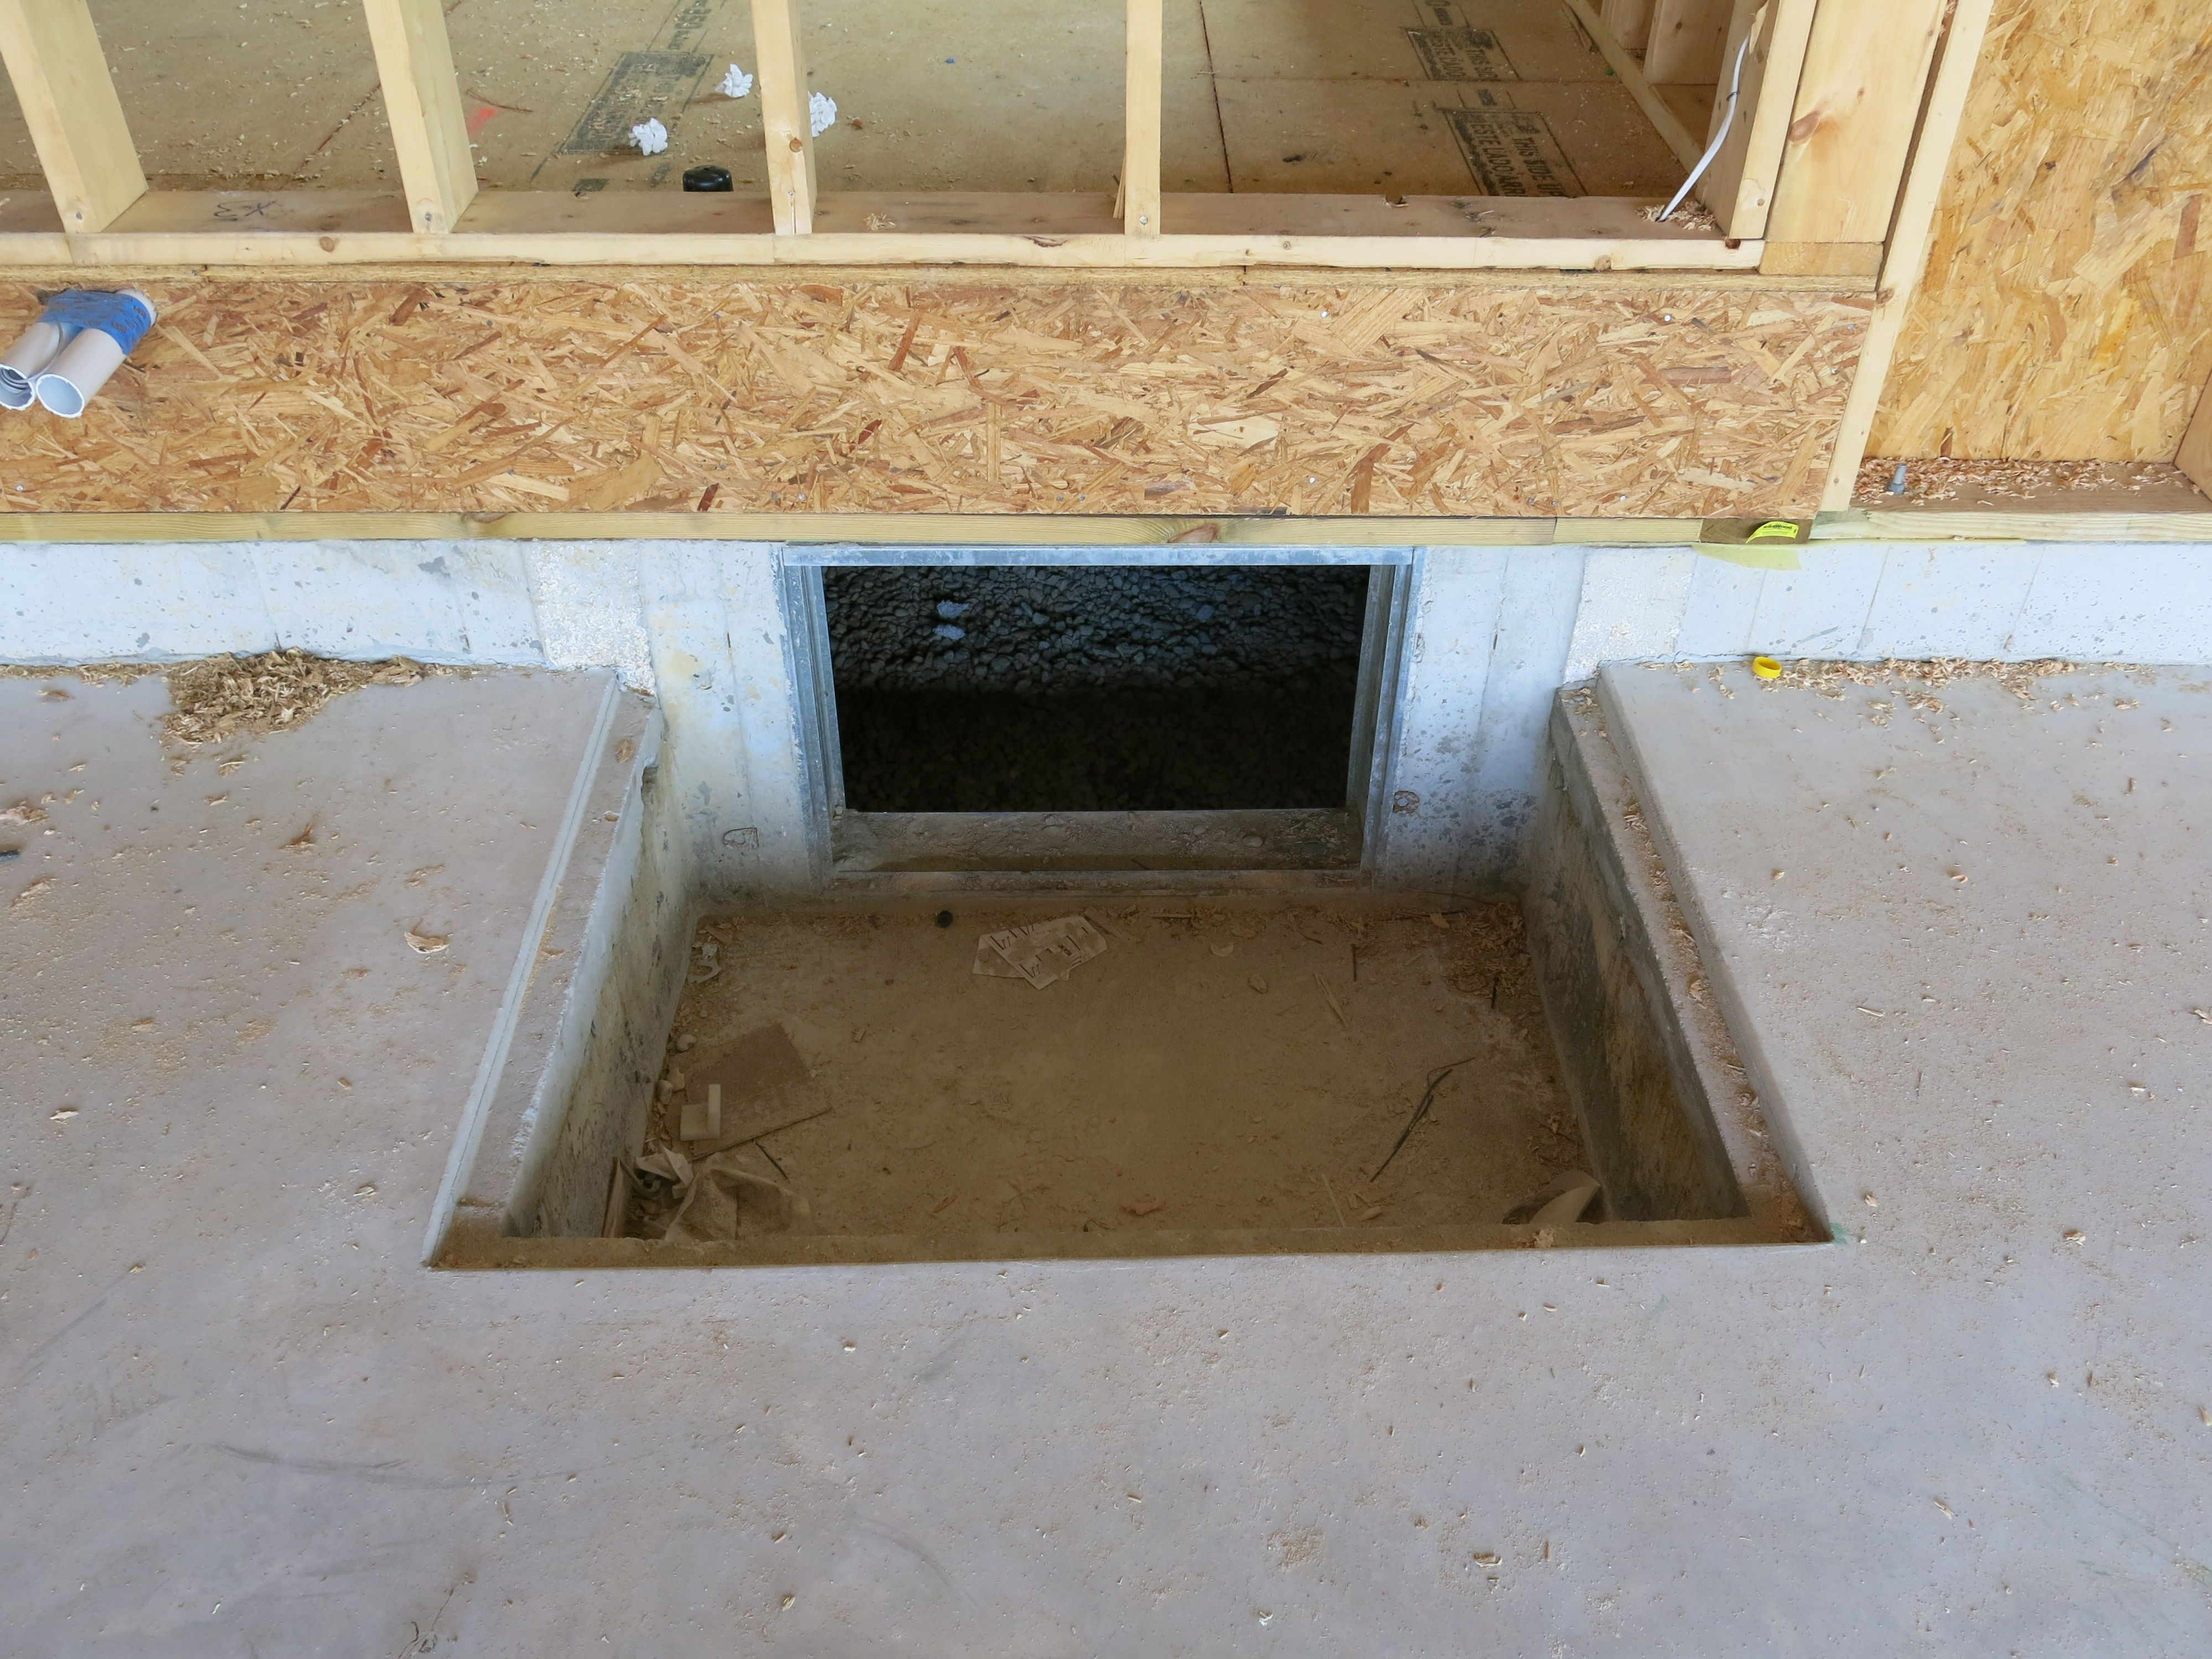 Interior crawl space door - Every Insight Home Has A Crawlspace Access Located In The Garage